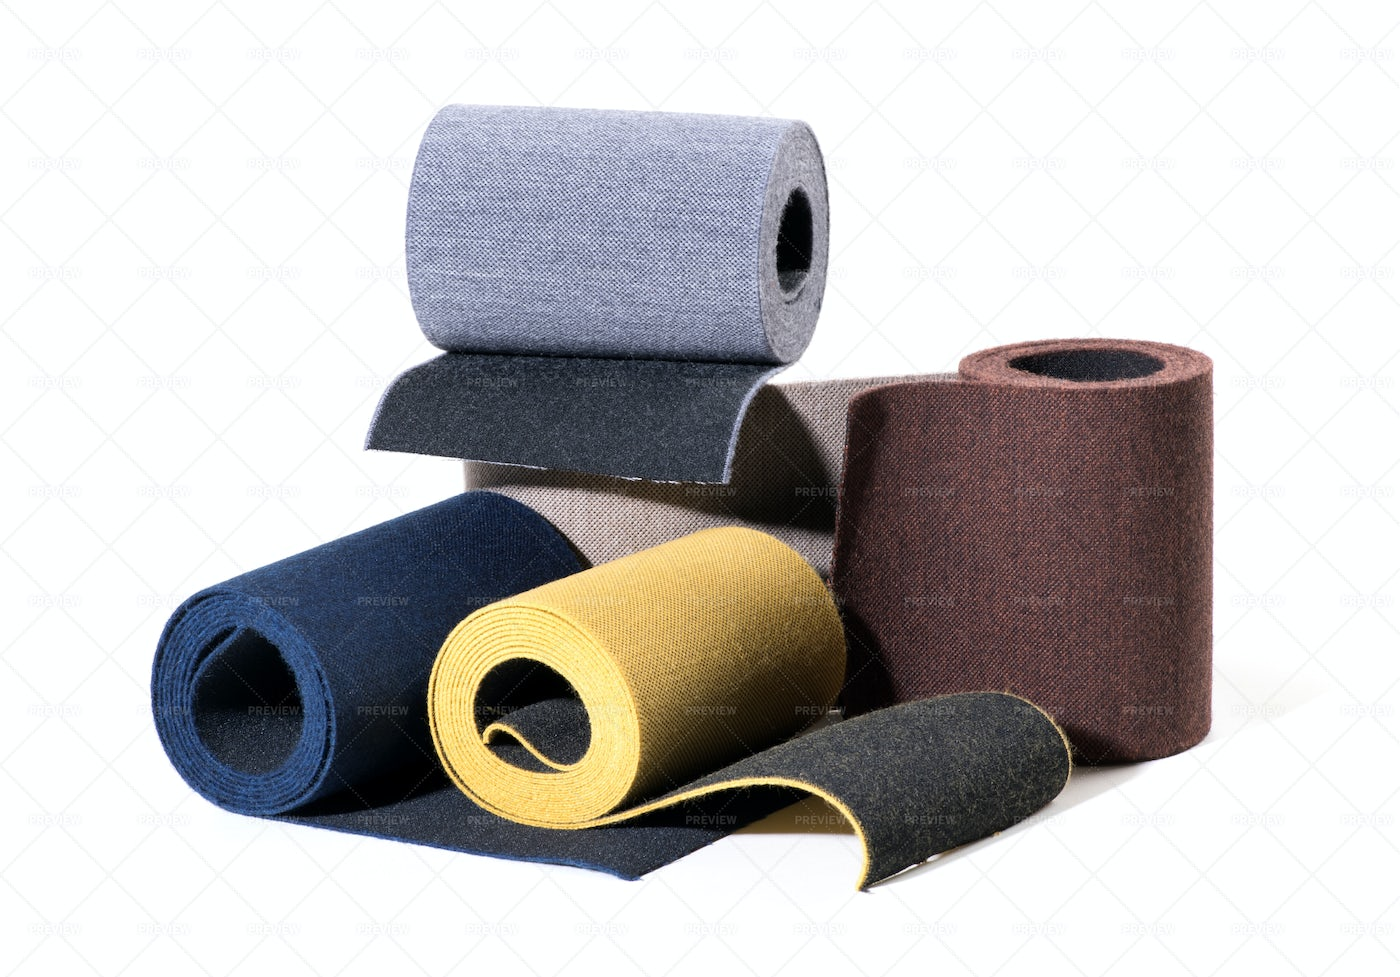 Textured Colored Elastic Ribbons: Stock Photos